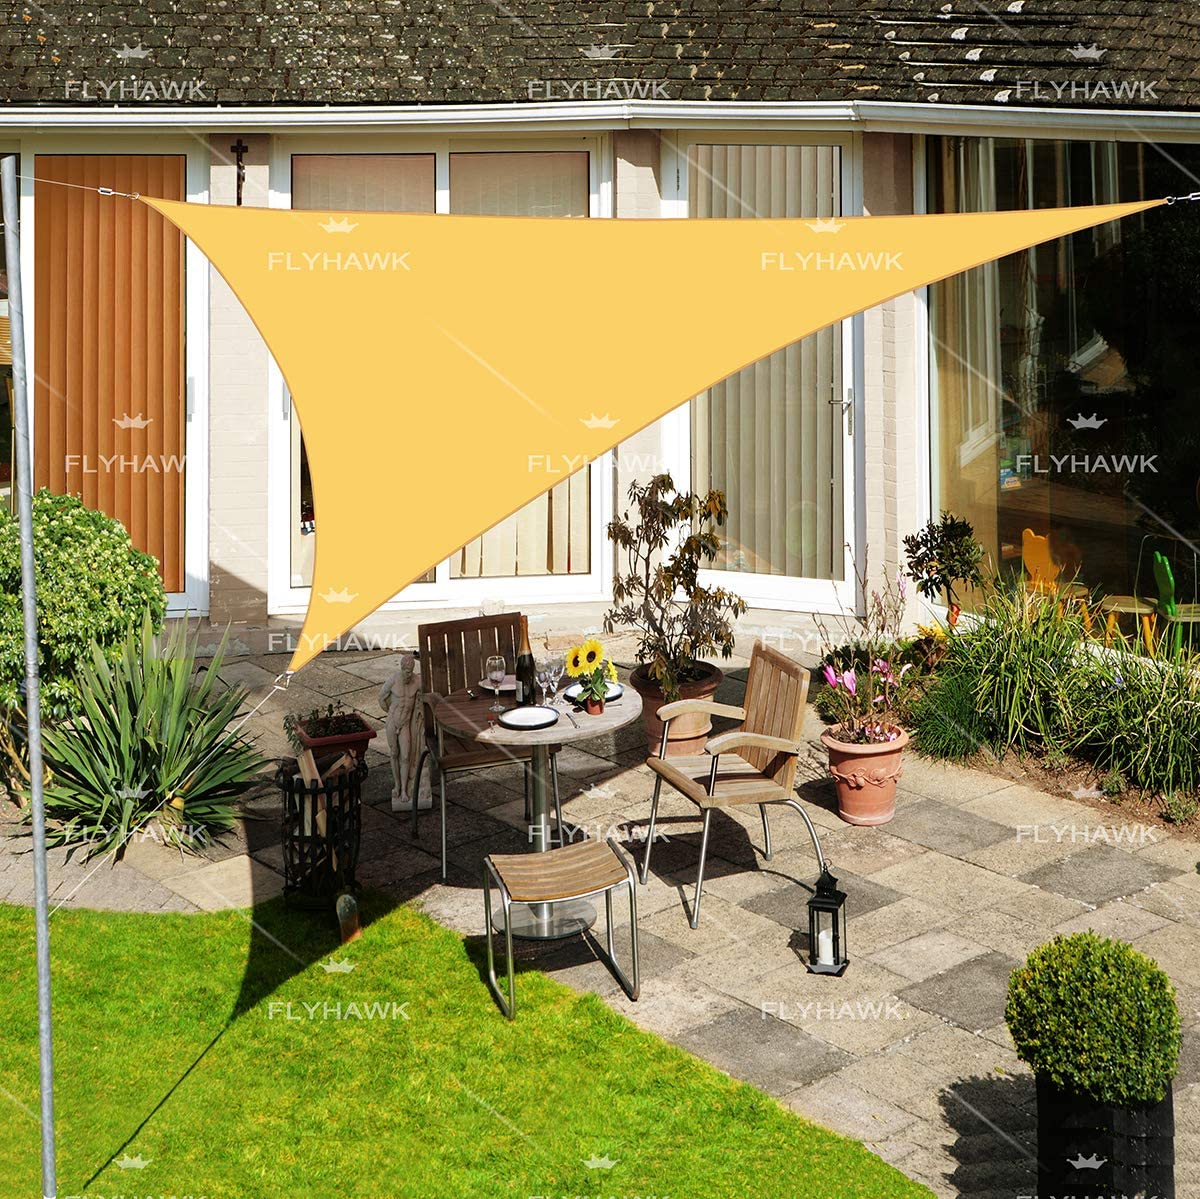 FLY HAWK Sun Shade Sail Triangle, 12 x12 x12 Patio Sunshade Cover Canopy – Durable Fabric Cloth for Outdoor Garden Yard Porch Pergola Driveway – Sand Color